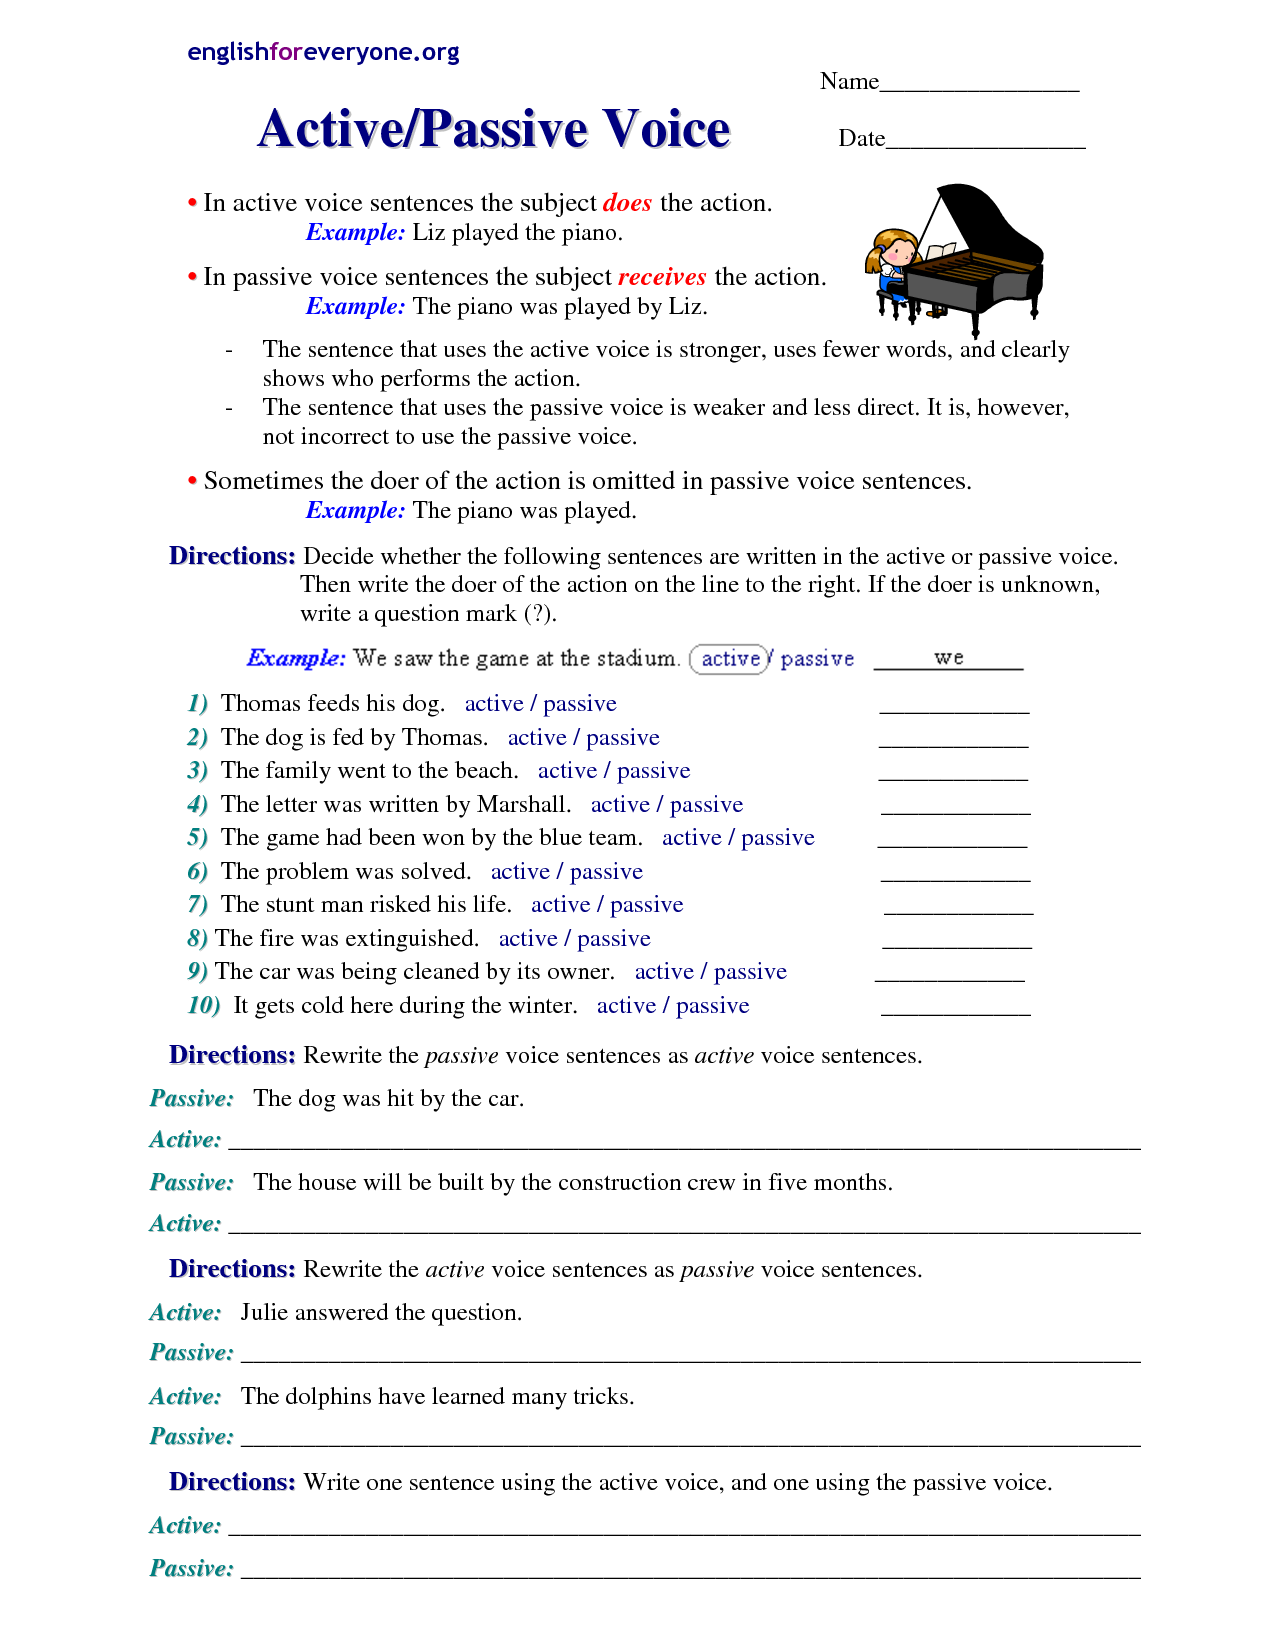 Active Passive Voice Worksheets Free Worksheets Library – Active Passive Voice Worksheet